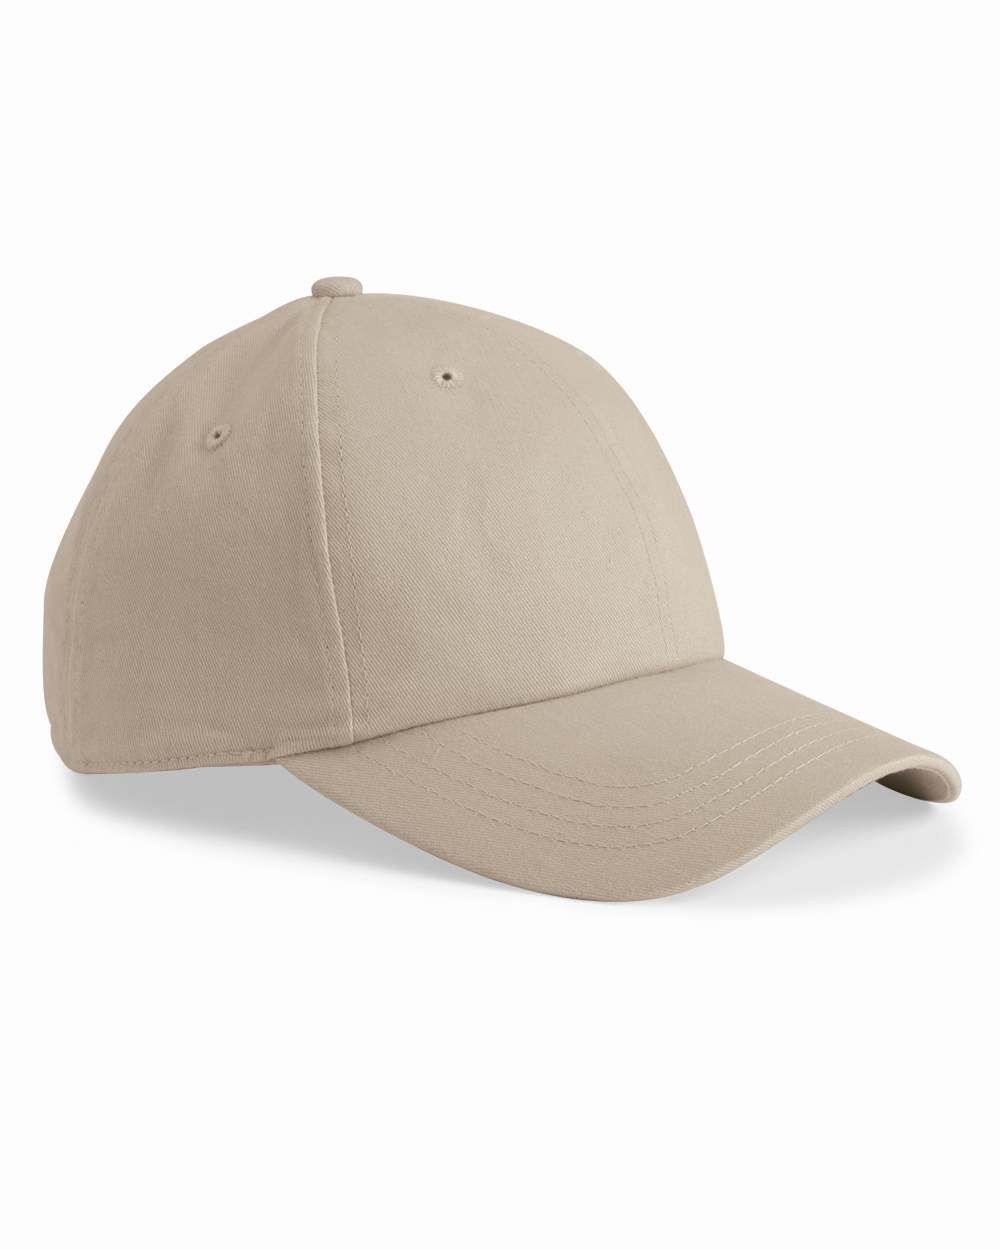 Valucap 6440 - Economy Cap